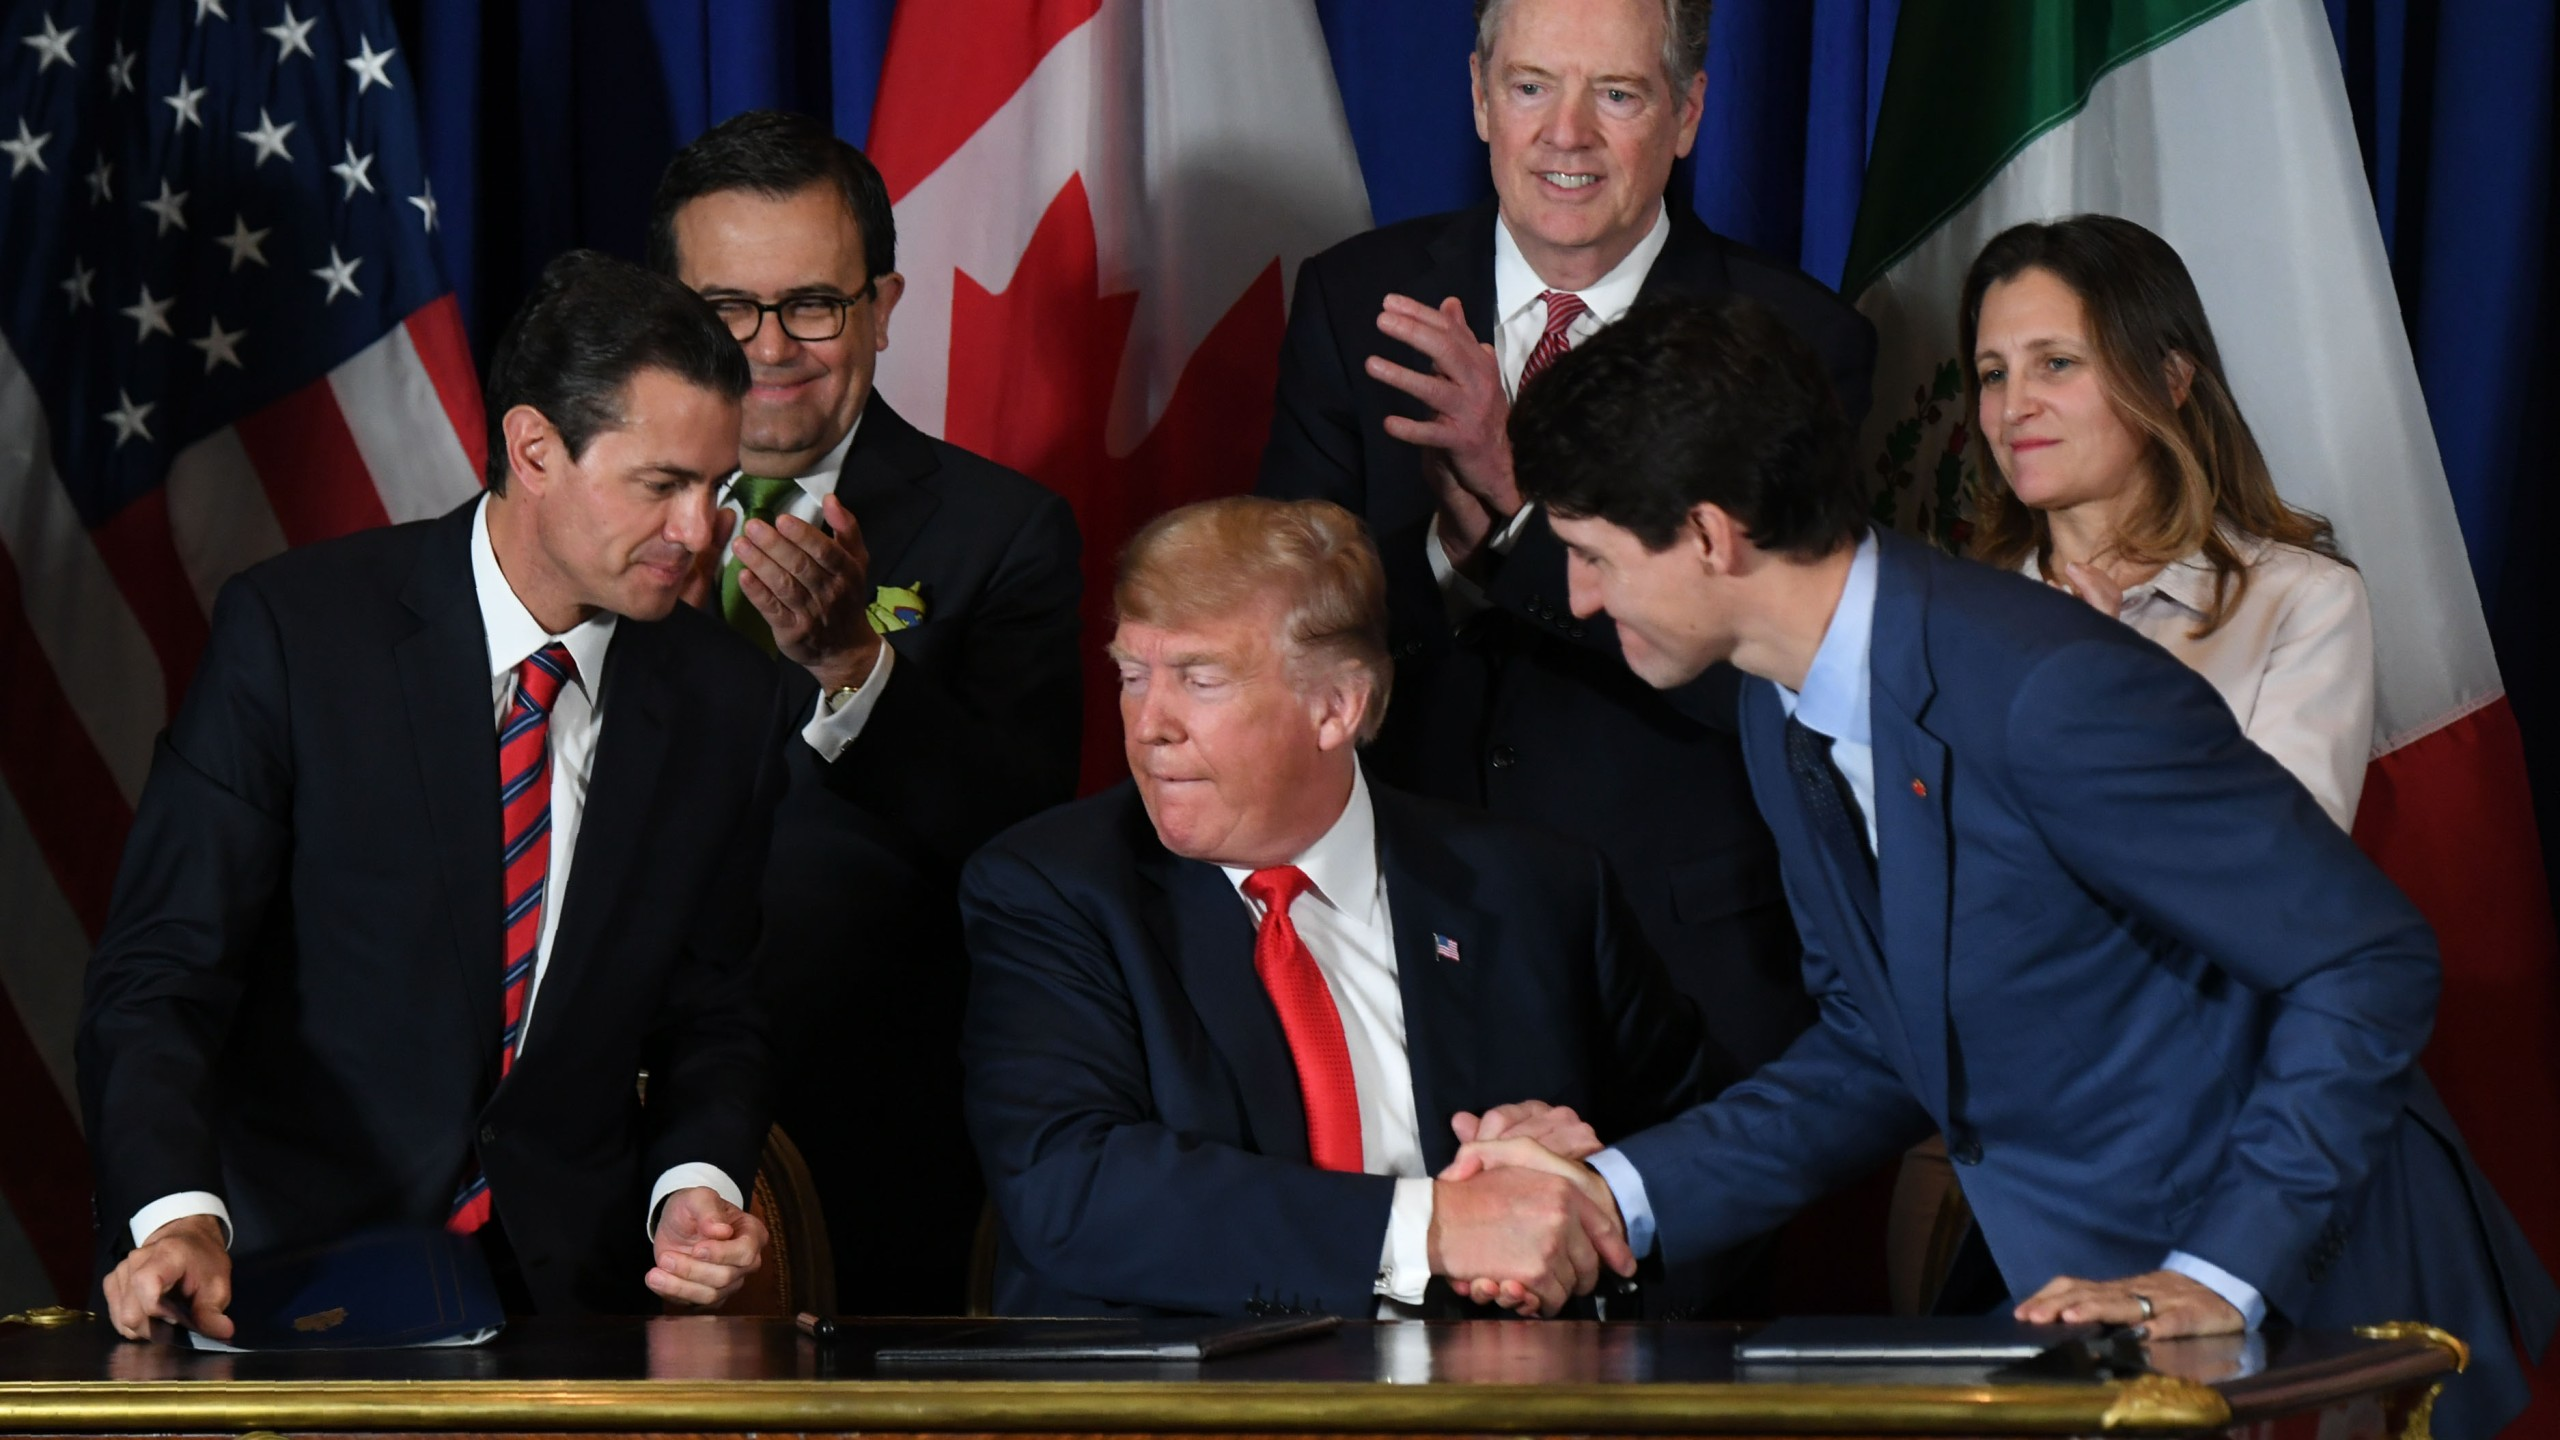 Mexican President Enrique Pena Nieto, US President Donald Trump and Canadian Prime Minister Justin Trudeau are pictured after signing a new free trade agreement in Buenos Aires, on Nov. 30, 2018, on the sidelines of the G20 Leaders' Summit. (Credit: Martin Bernetti/AFP/Getty Images)